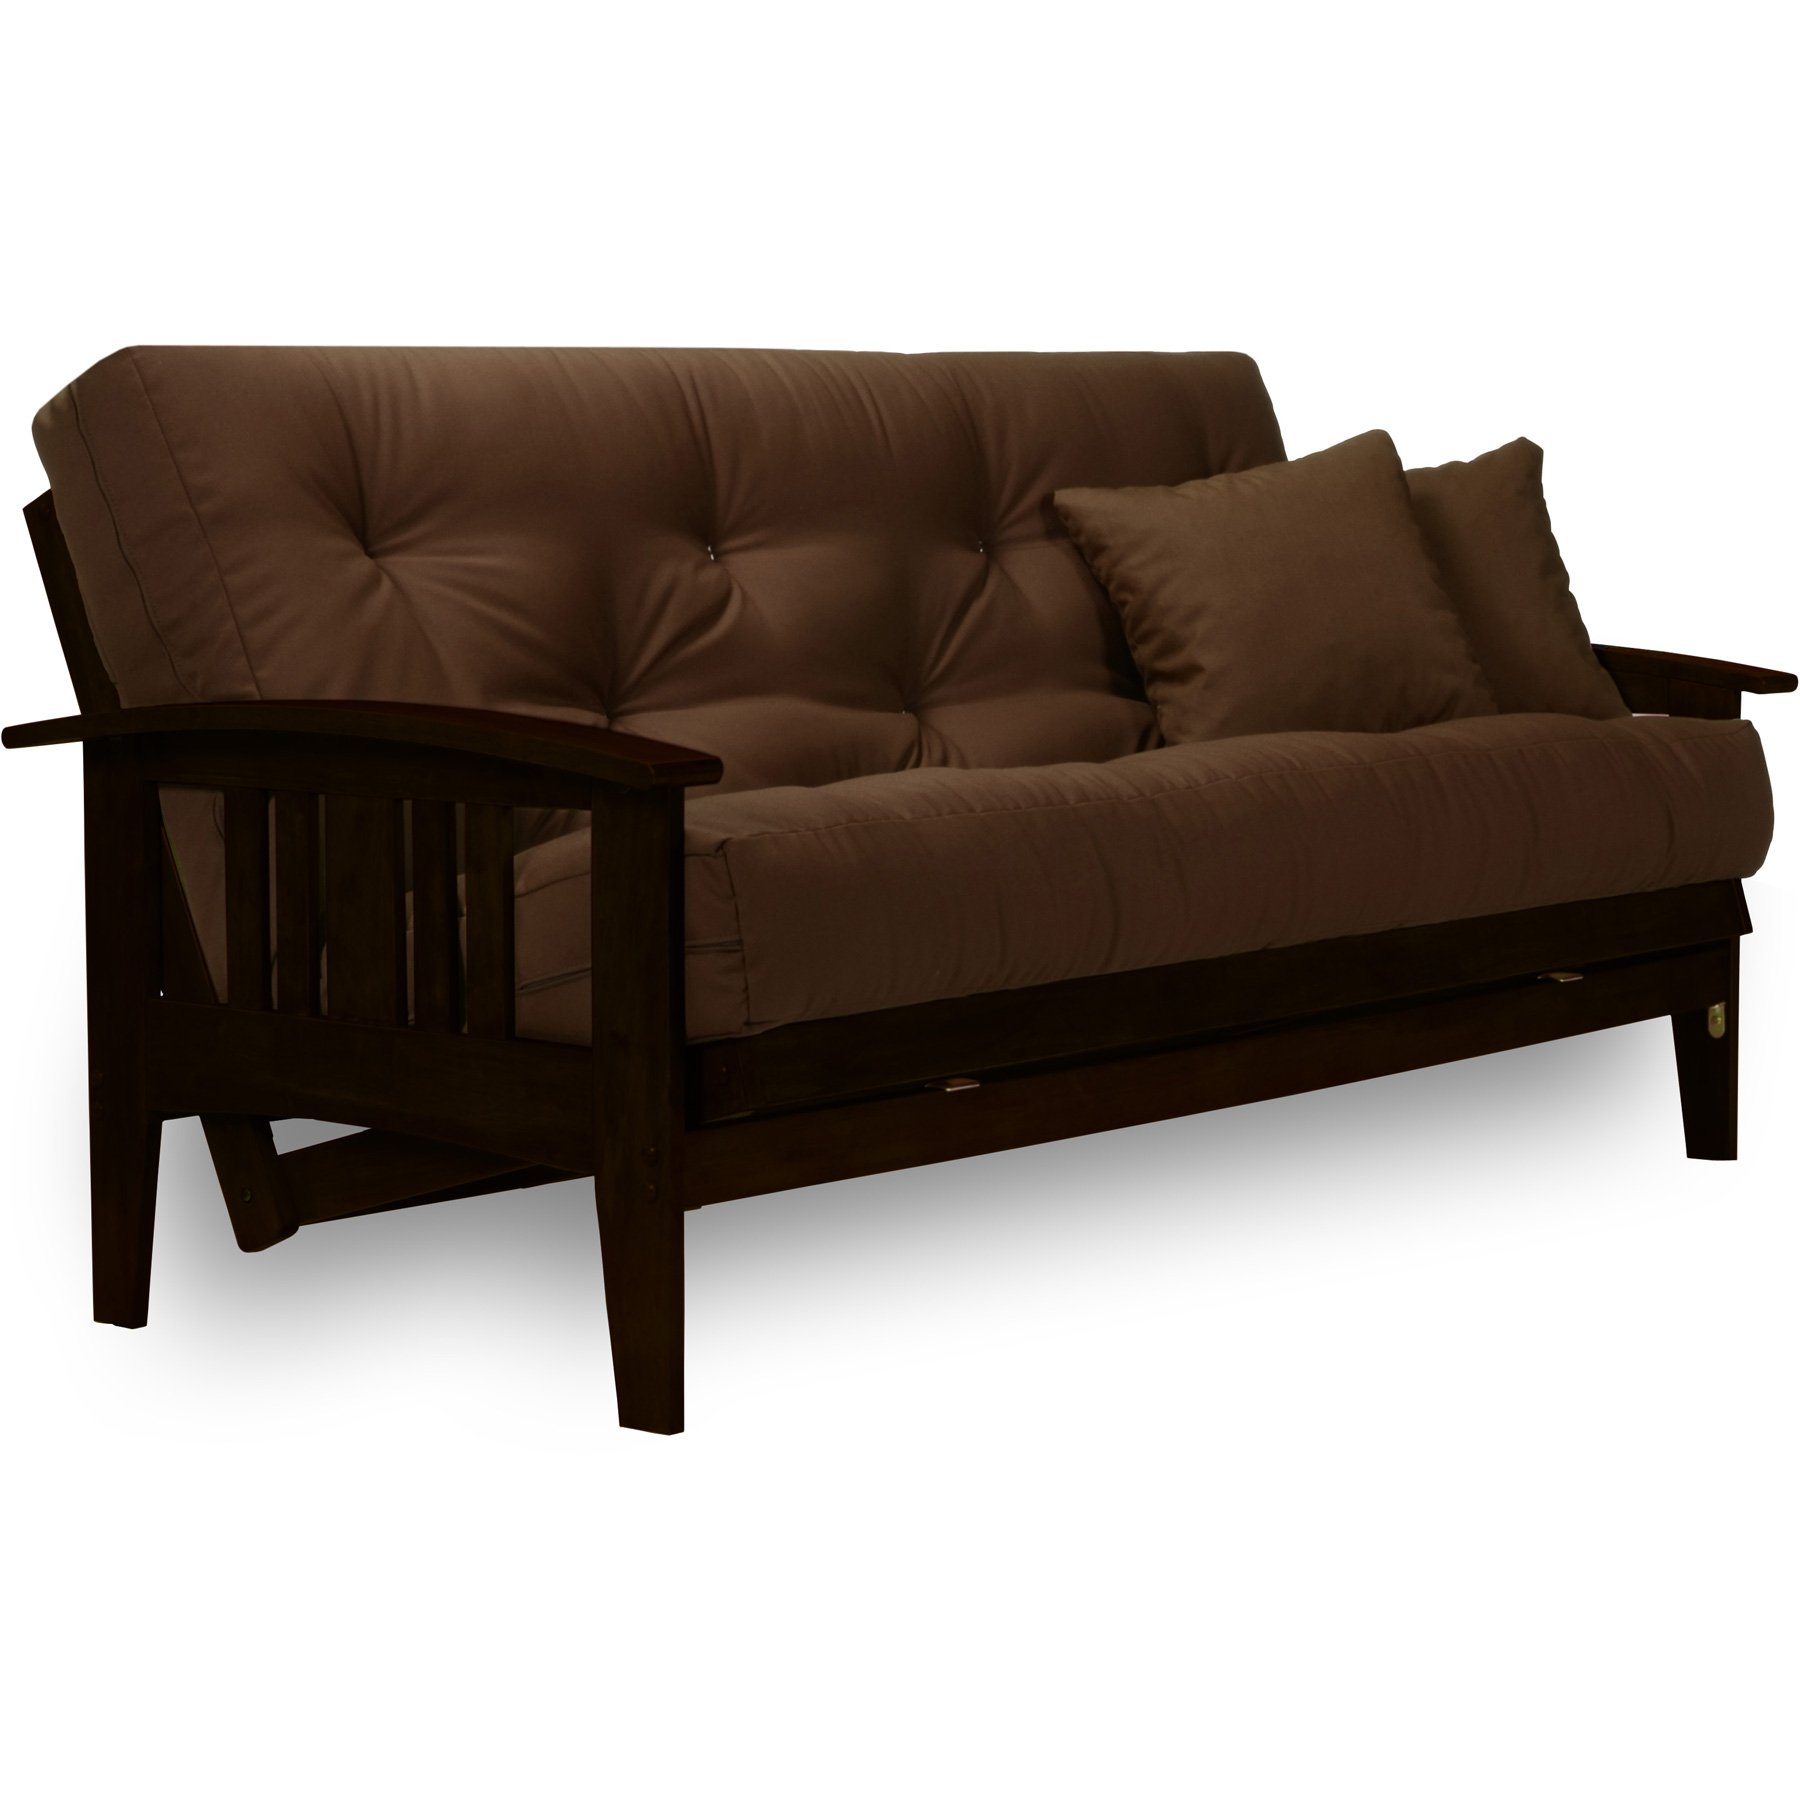 Westfield Rich Espresso Futon Frame - (Available in Full or Queen Size, Warm Black Finish) Made of Solid Wood, Mission Style Futon Sofa Sleeper Frame with Curved Arms by Nirvana Futons